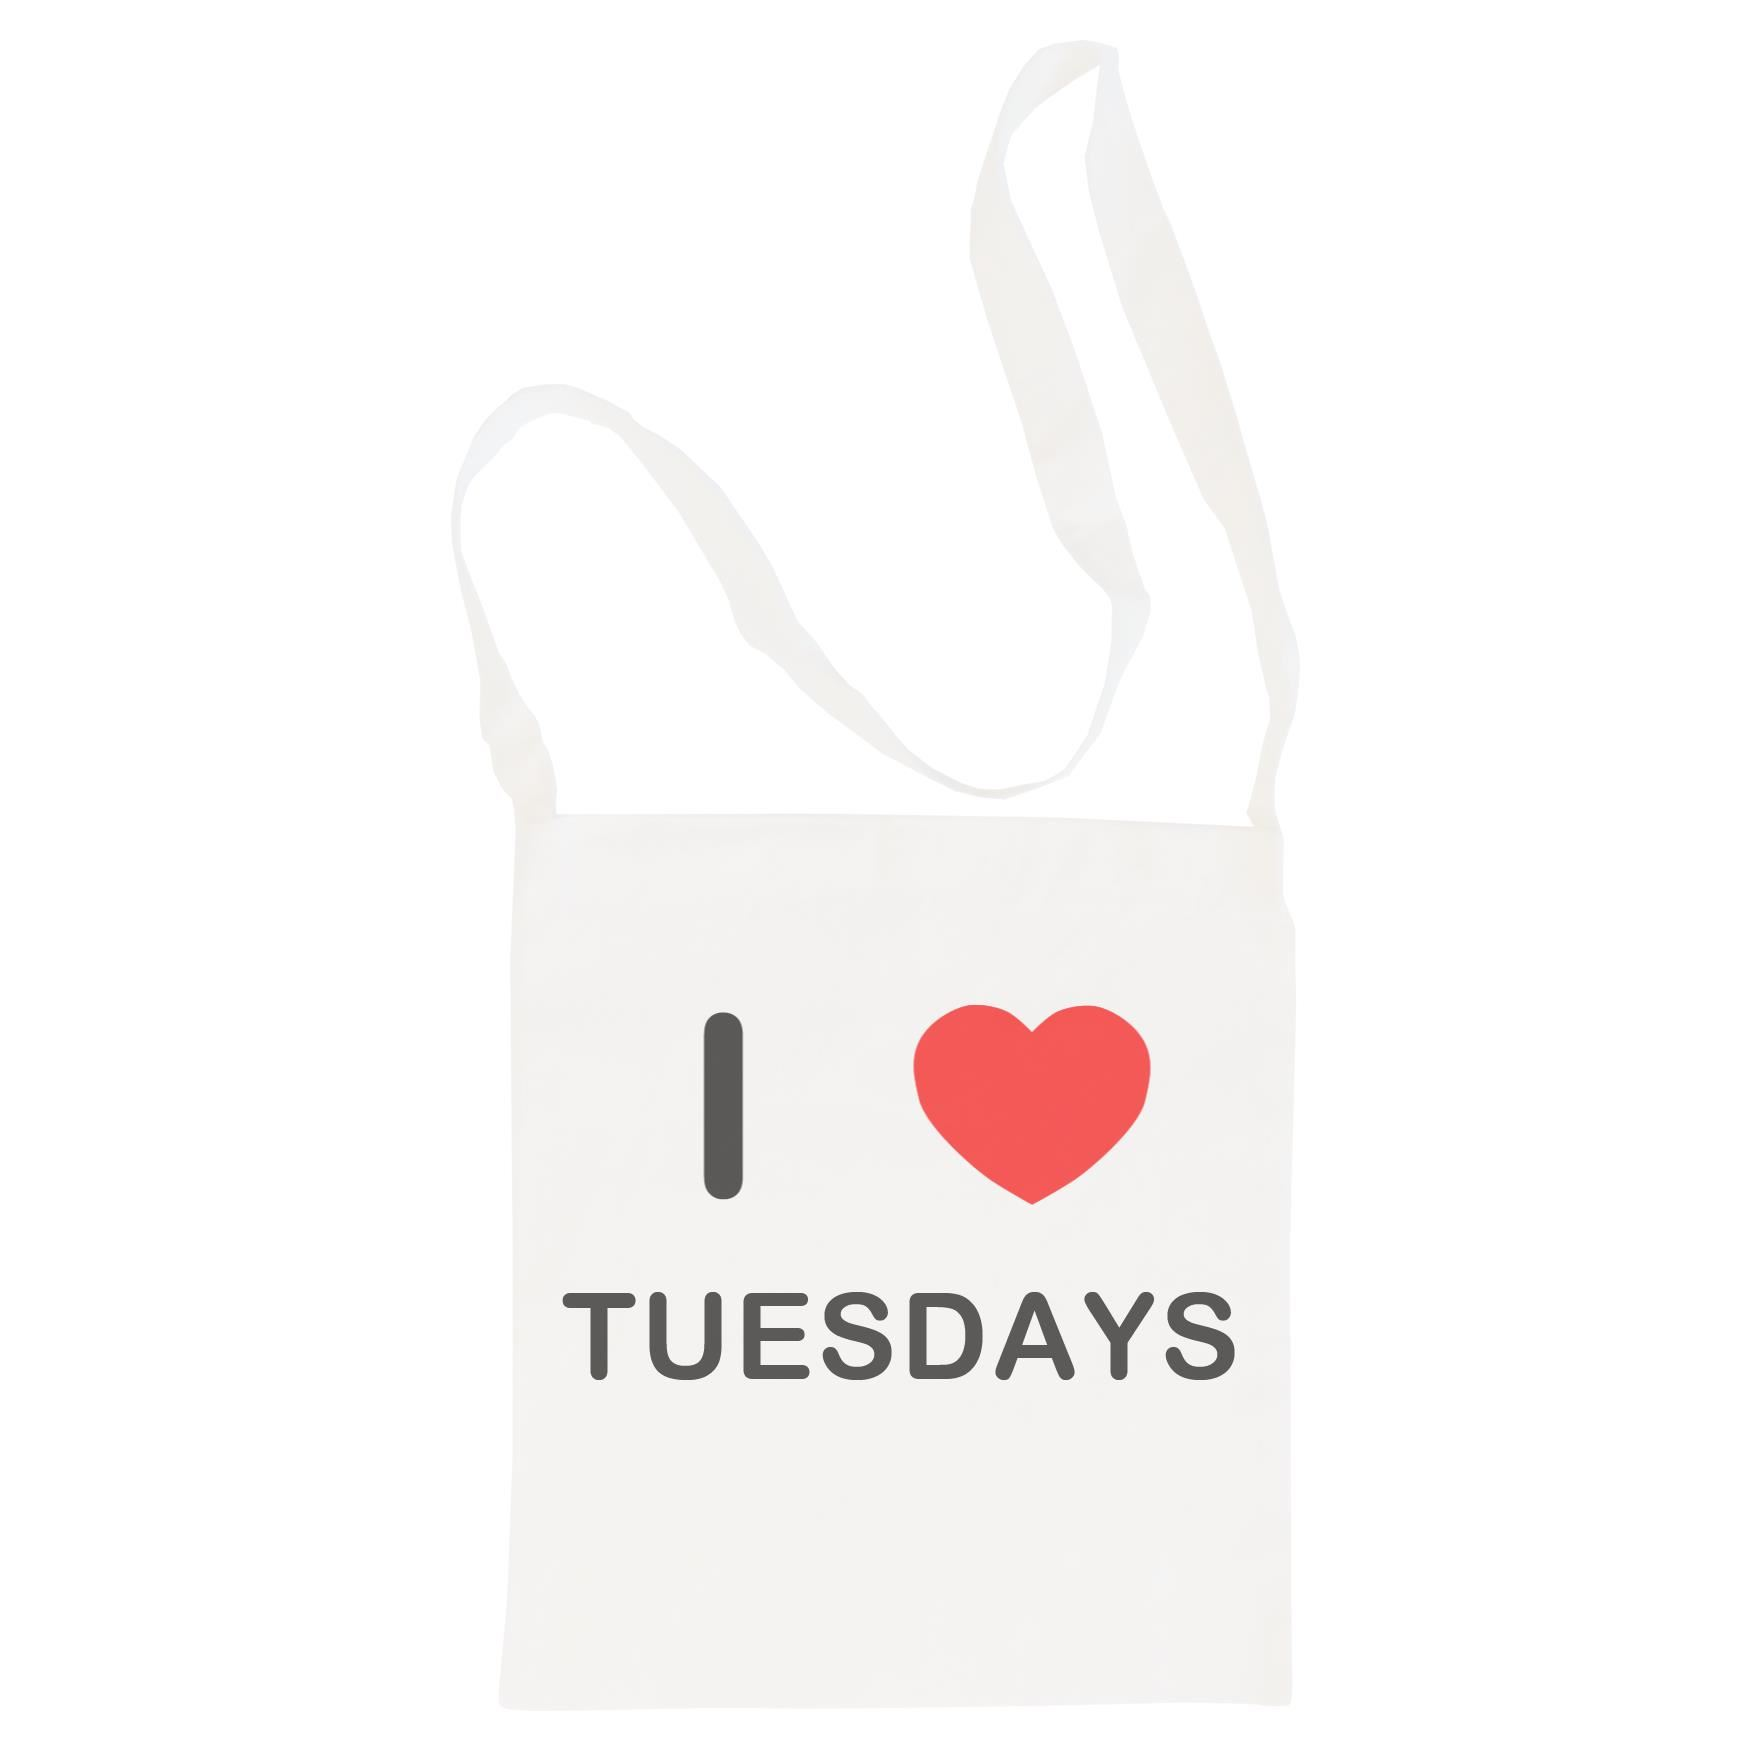 I Love Tuesdays - Cotton Bag | Size choice Tote, Shopper or Sling